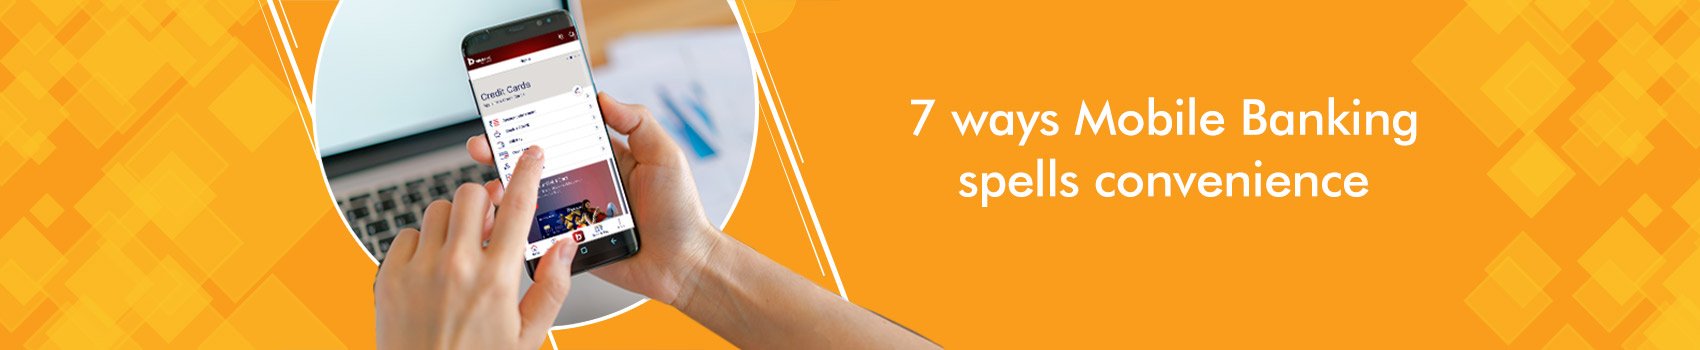 7 ways Mobile Banking spells convenience